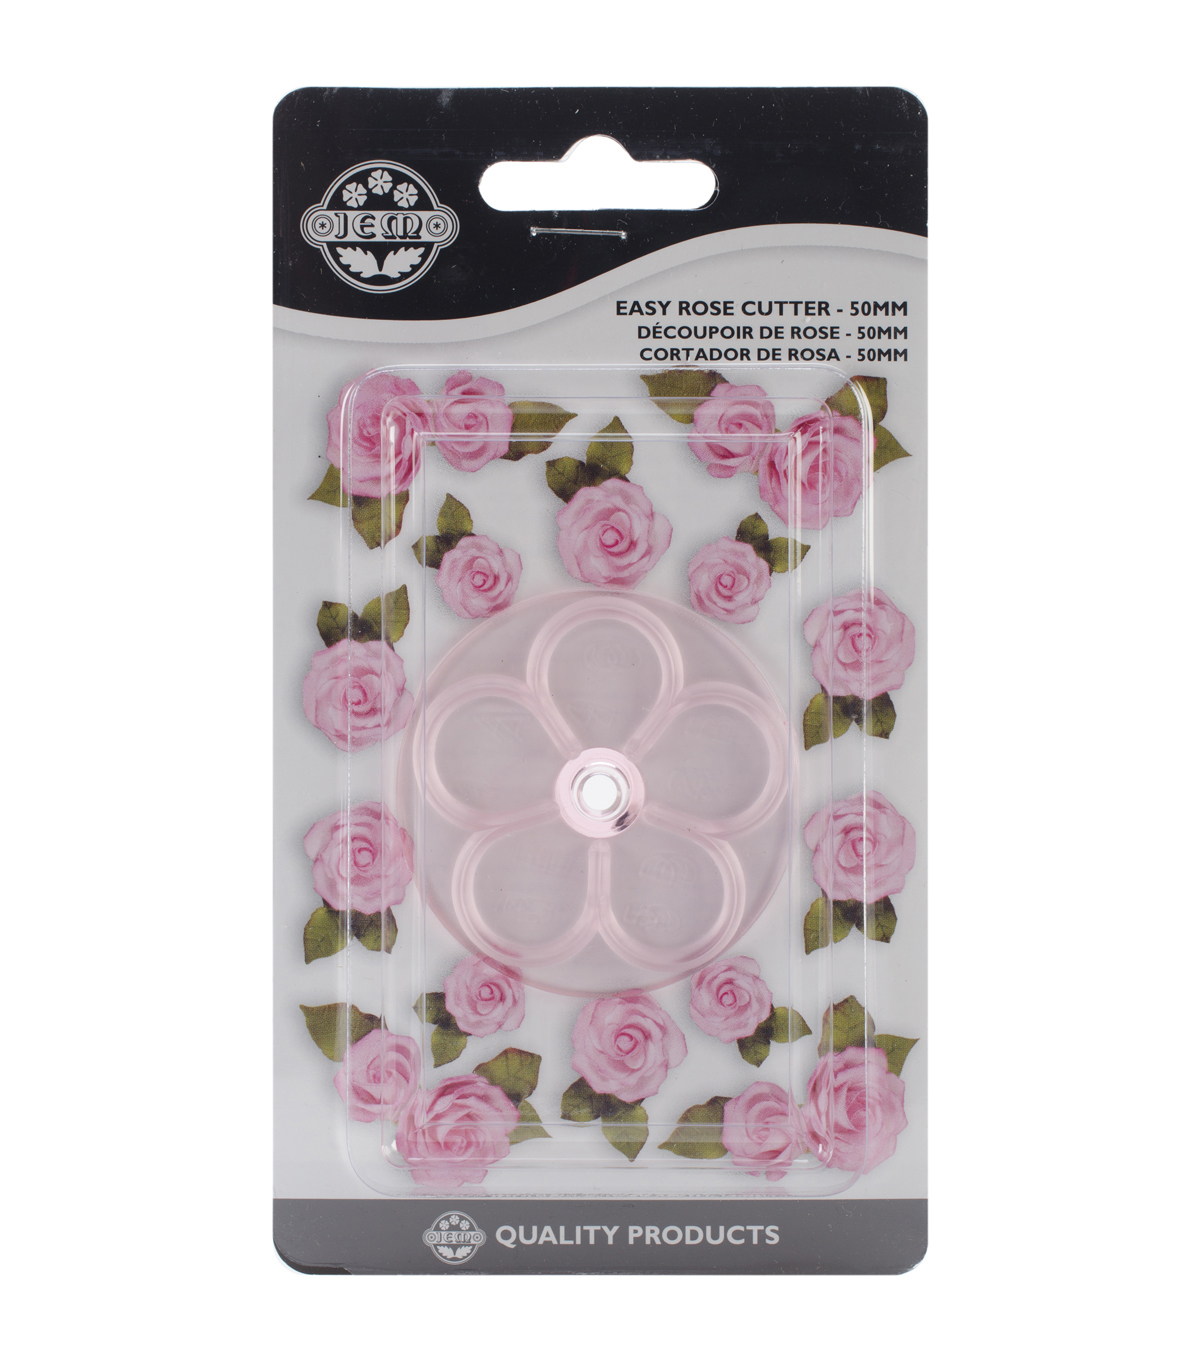 JEM Plastic Easy Rose Cutter 50mm